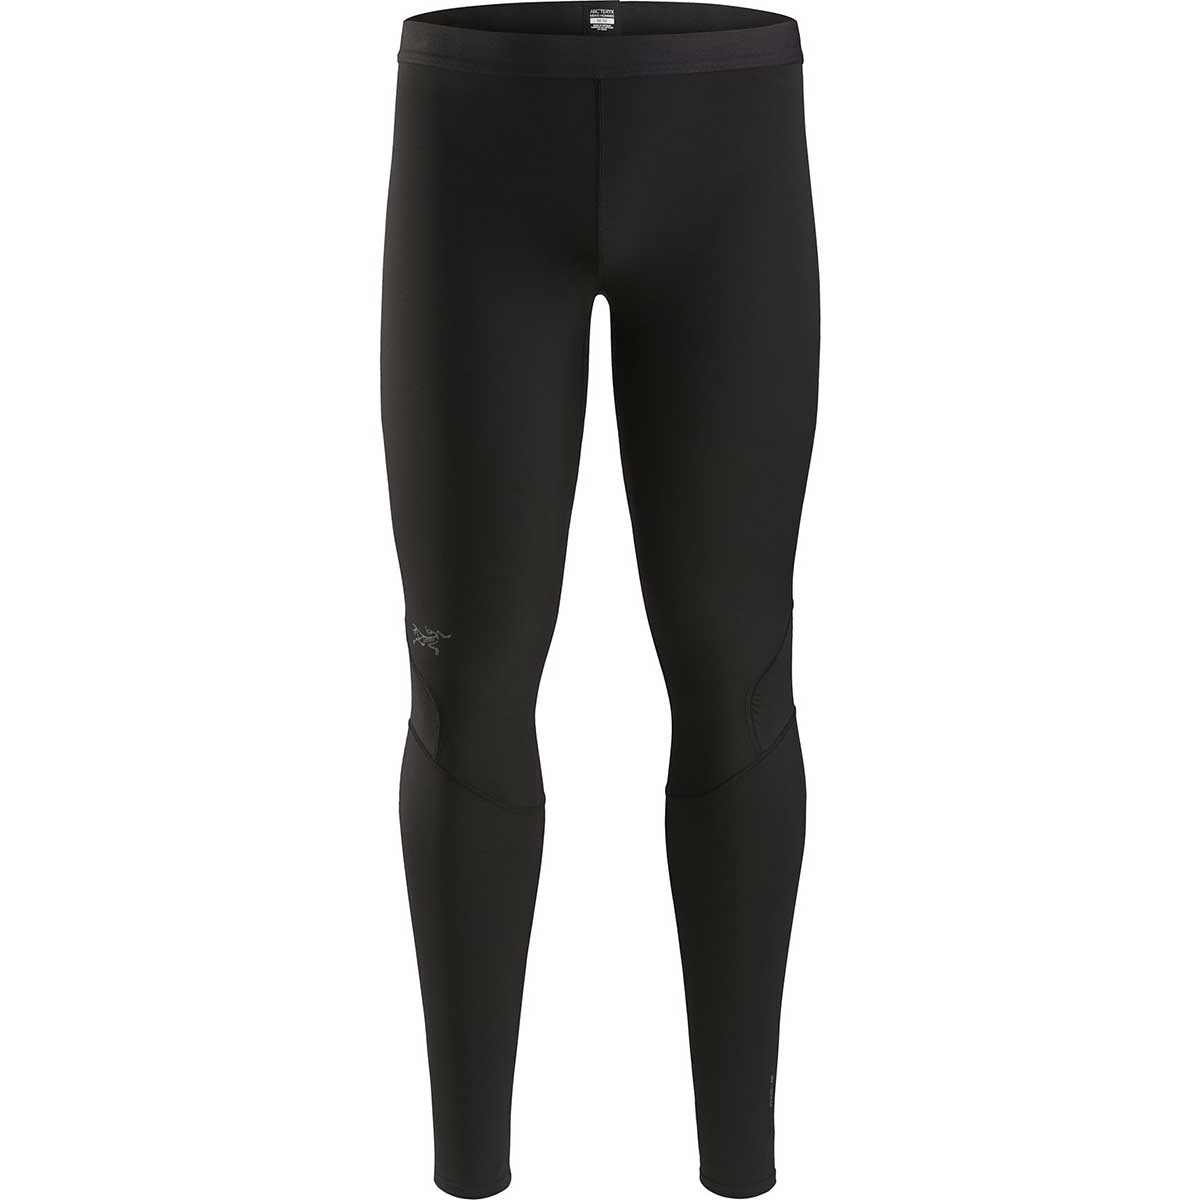 Arcteryx men's Phase AR Bottom in Black front view